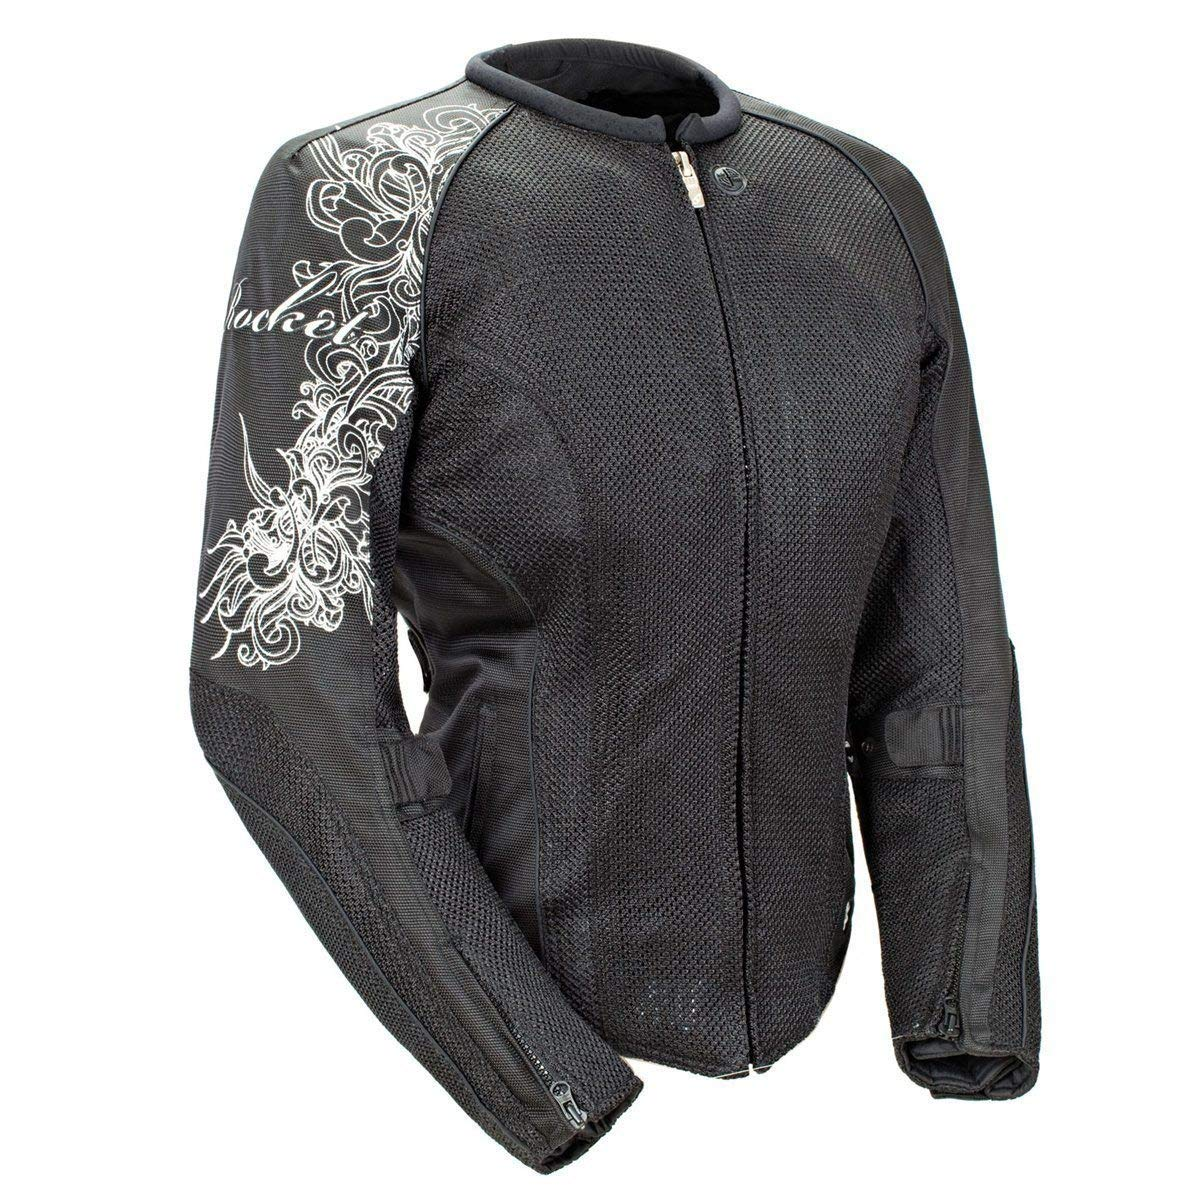 Amazon.com: Campera estilo motociclista de malla Joe Rocket ...